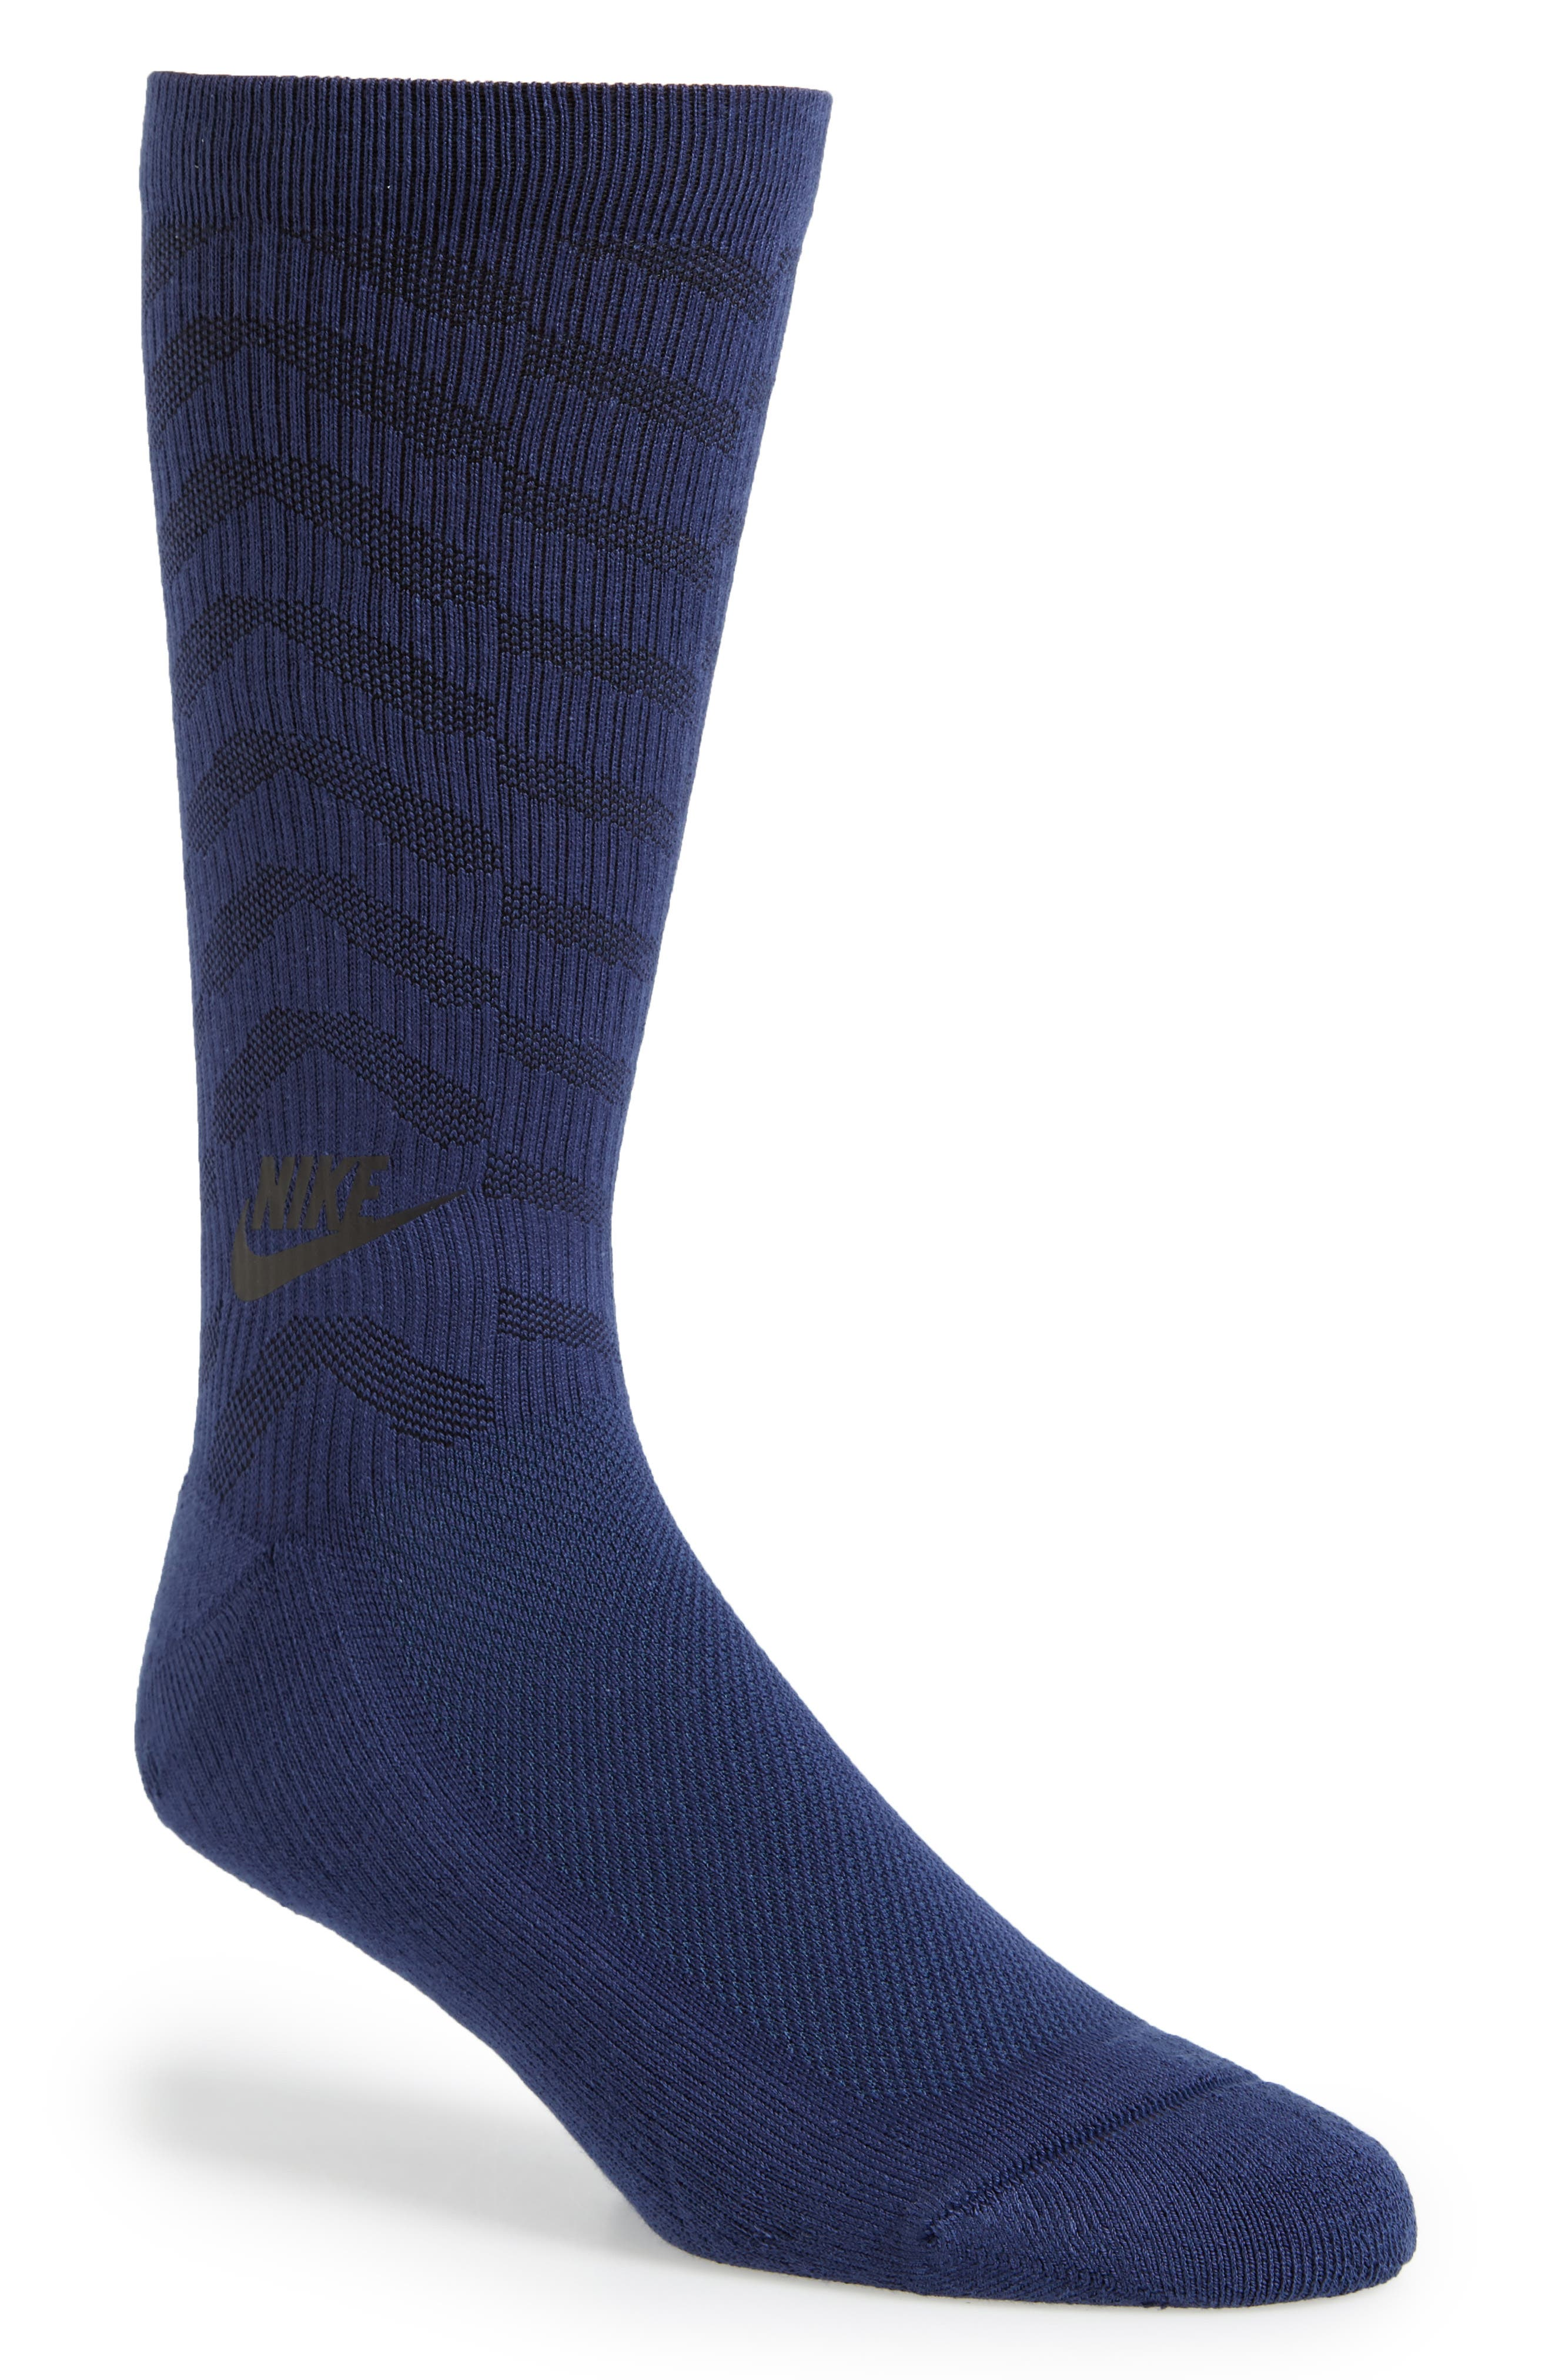 Statement Graphic Socks,                         Main,                         color, Binary Blue